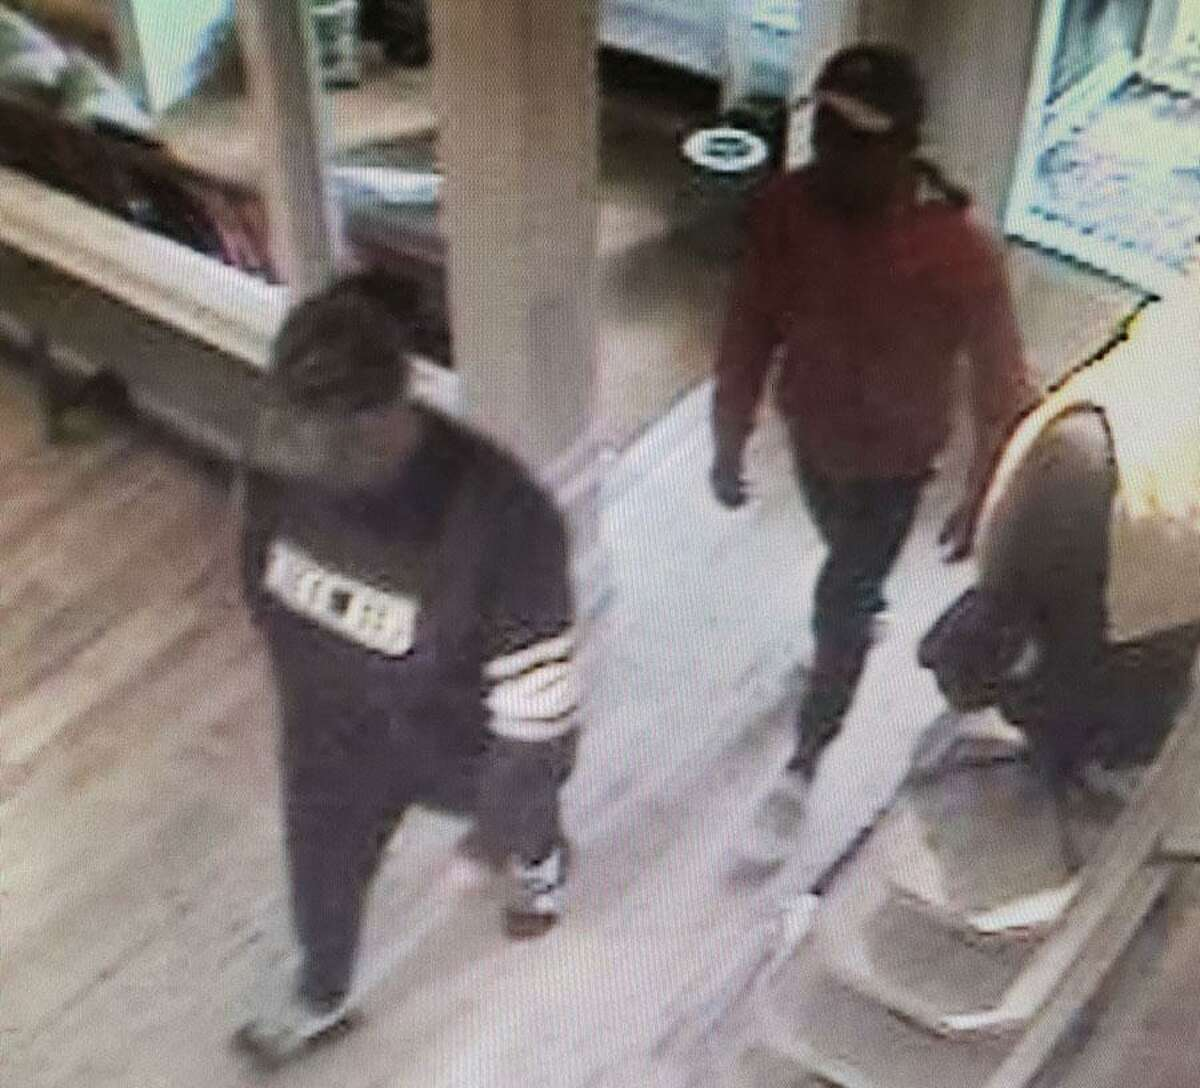 New Canaan Police have released surveillance footage of suspects in a theft at the Ralph Lauren store on Elm Street on Monday, Oct. 7, the third such shoplifting in a five-day span at the same store.